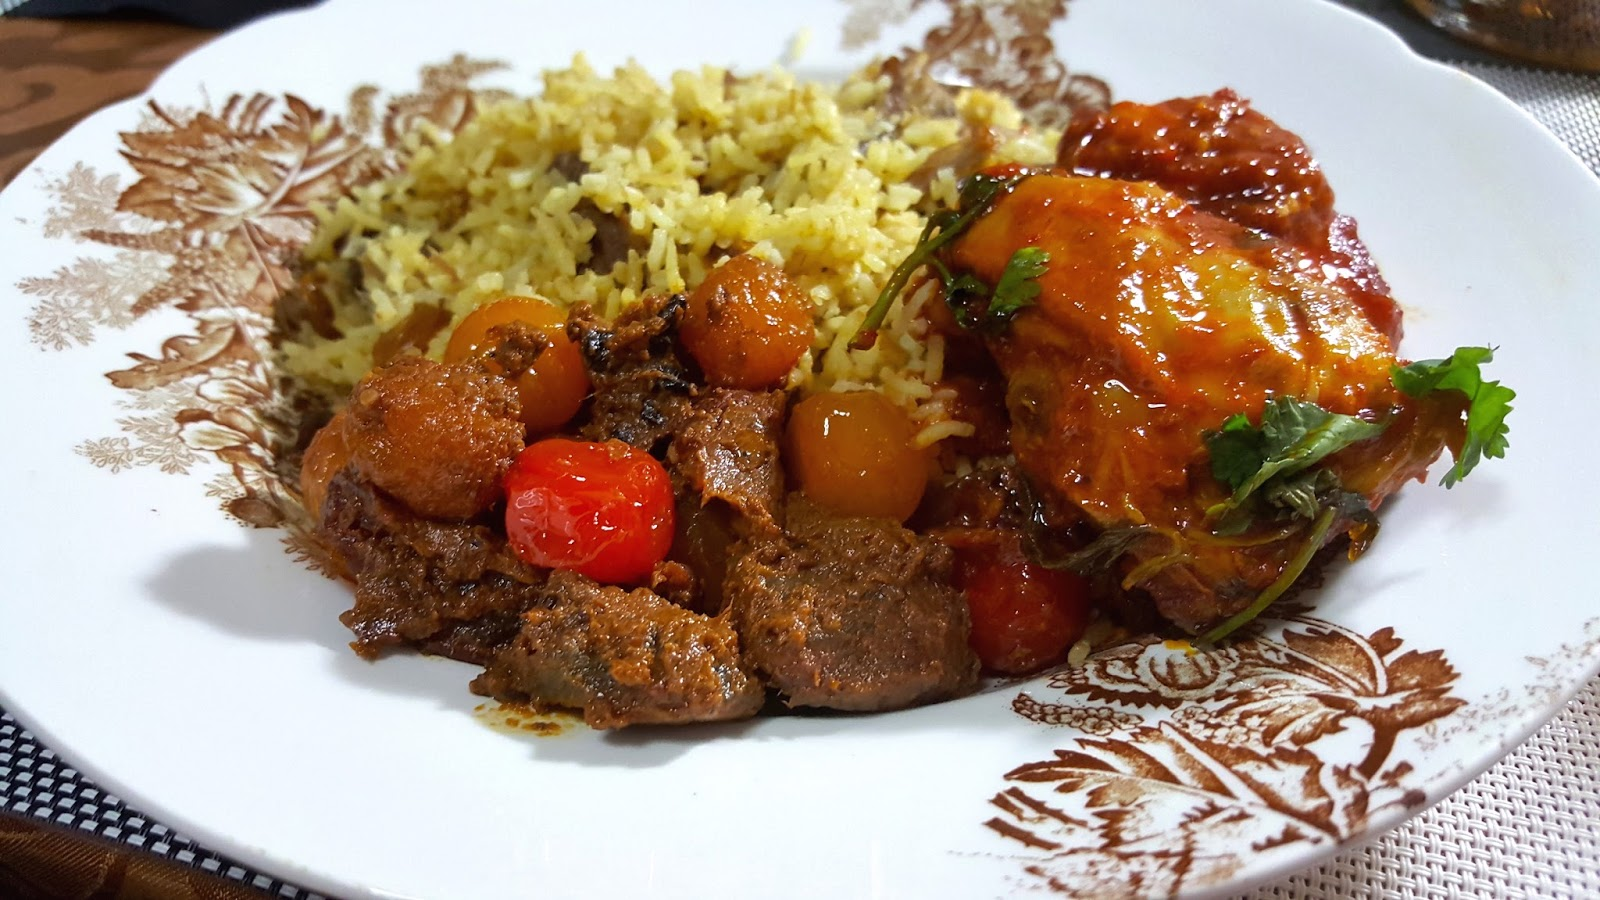 Ayam Masak Merah Cooked With A Twist And It Taste Great Plain Or Flavoured Rice Delicious En Dish Created In Easy Steps Do Share Try